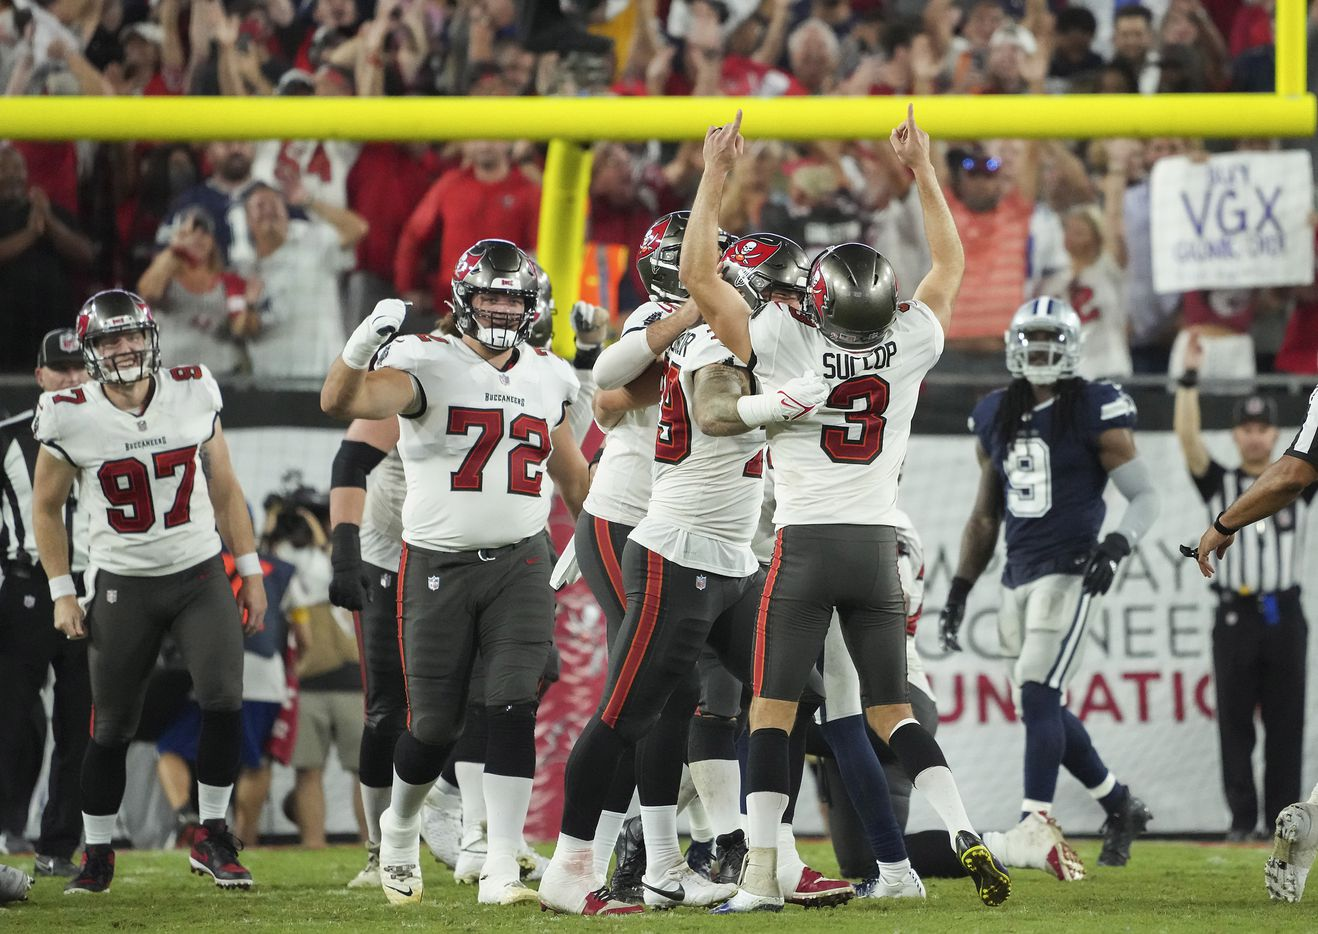 Tampa Bay Buccaneers place kicker Ryan Succop (3) celebrates after kicking a game-winning field goal in the final seconds of an NFL football game against the Dallas Cowboys at Raymond James Stadium on Thursday, Sept. 9, 2021, in Tampa, Fla. The  Buccaneers won the game 31-29. (Smiley N. Pool/The Dallas Morning News)